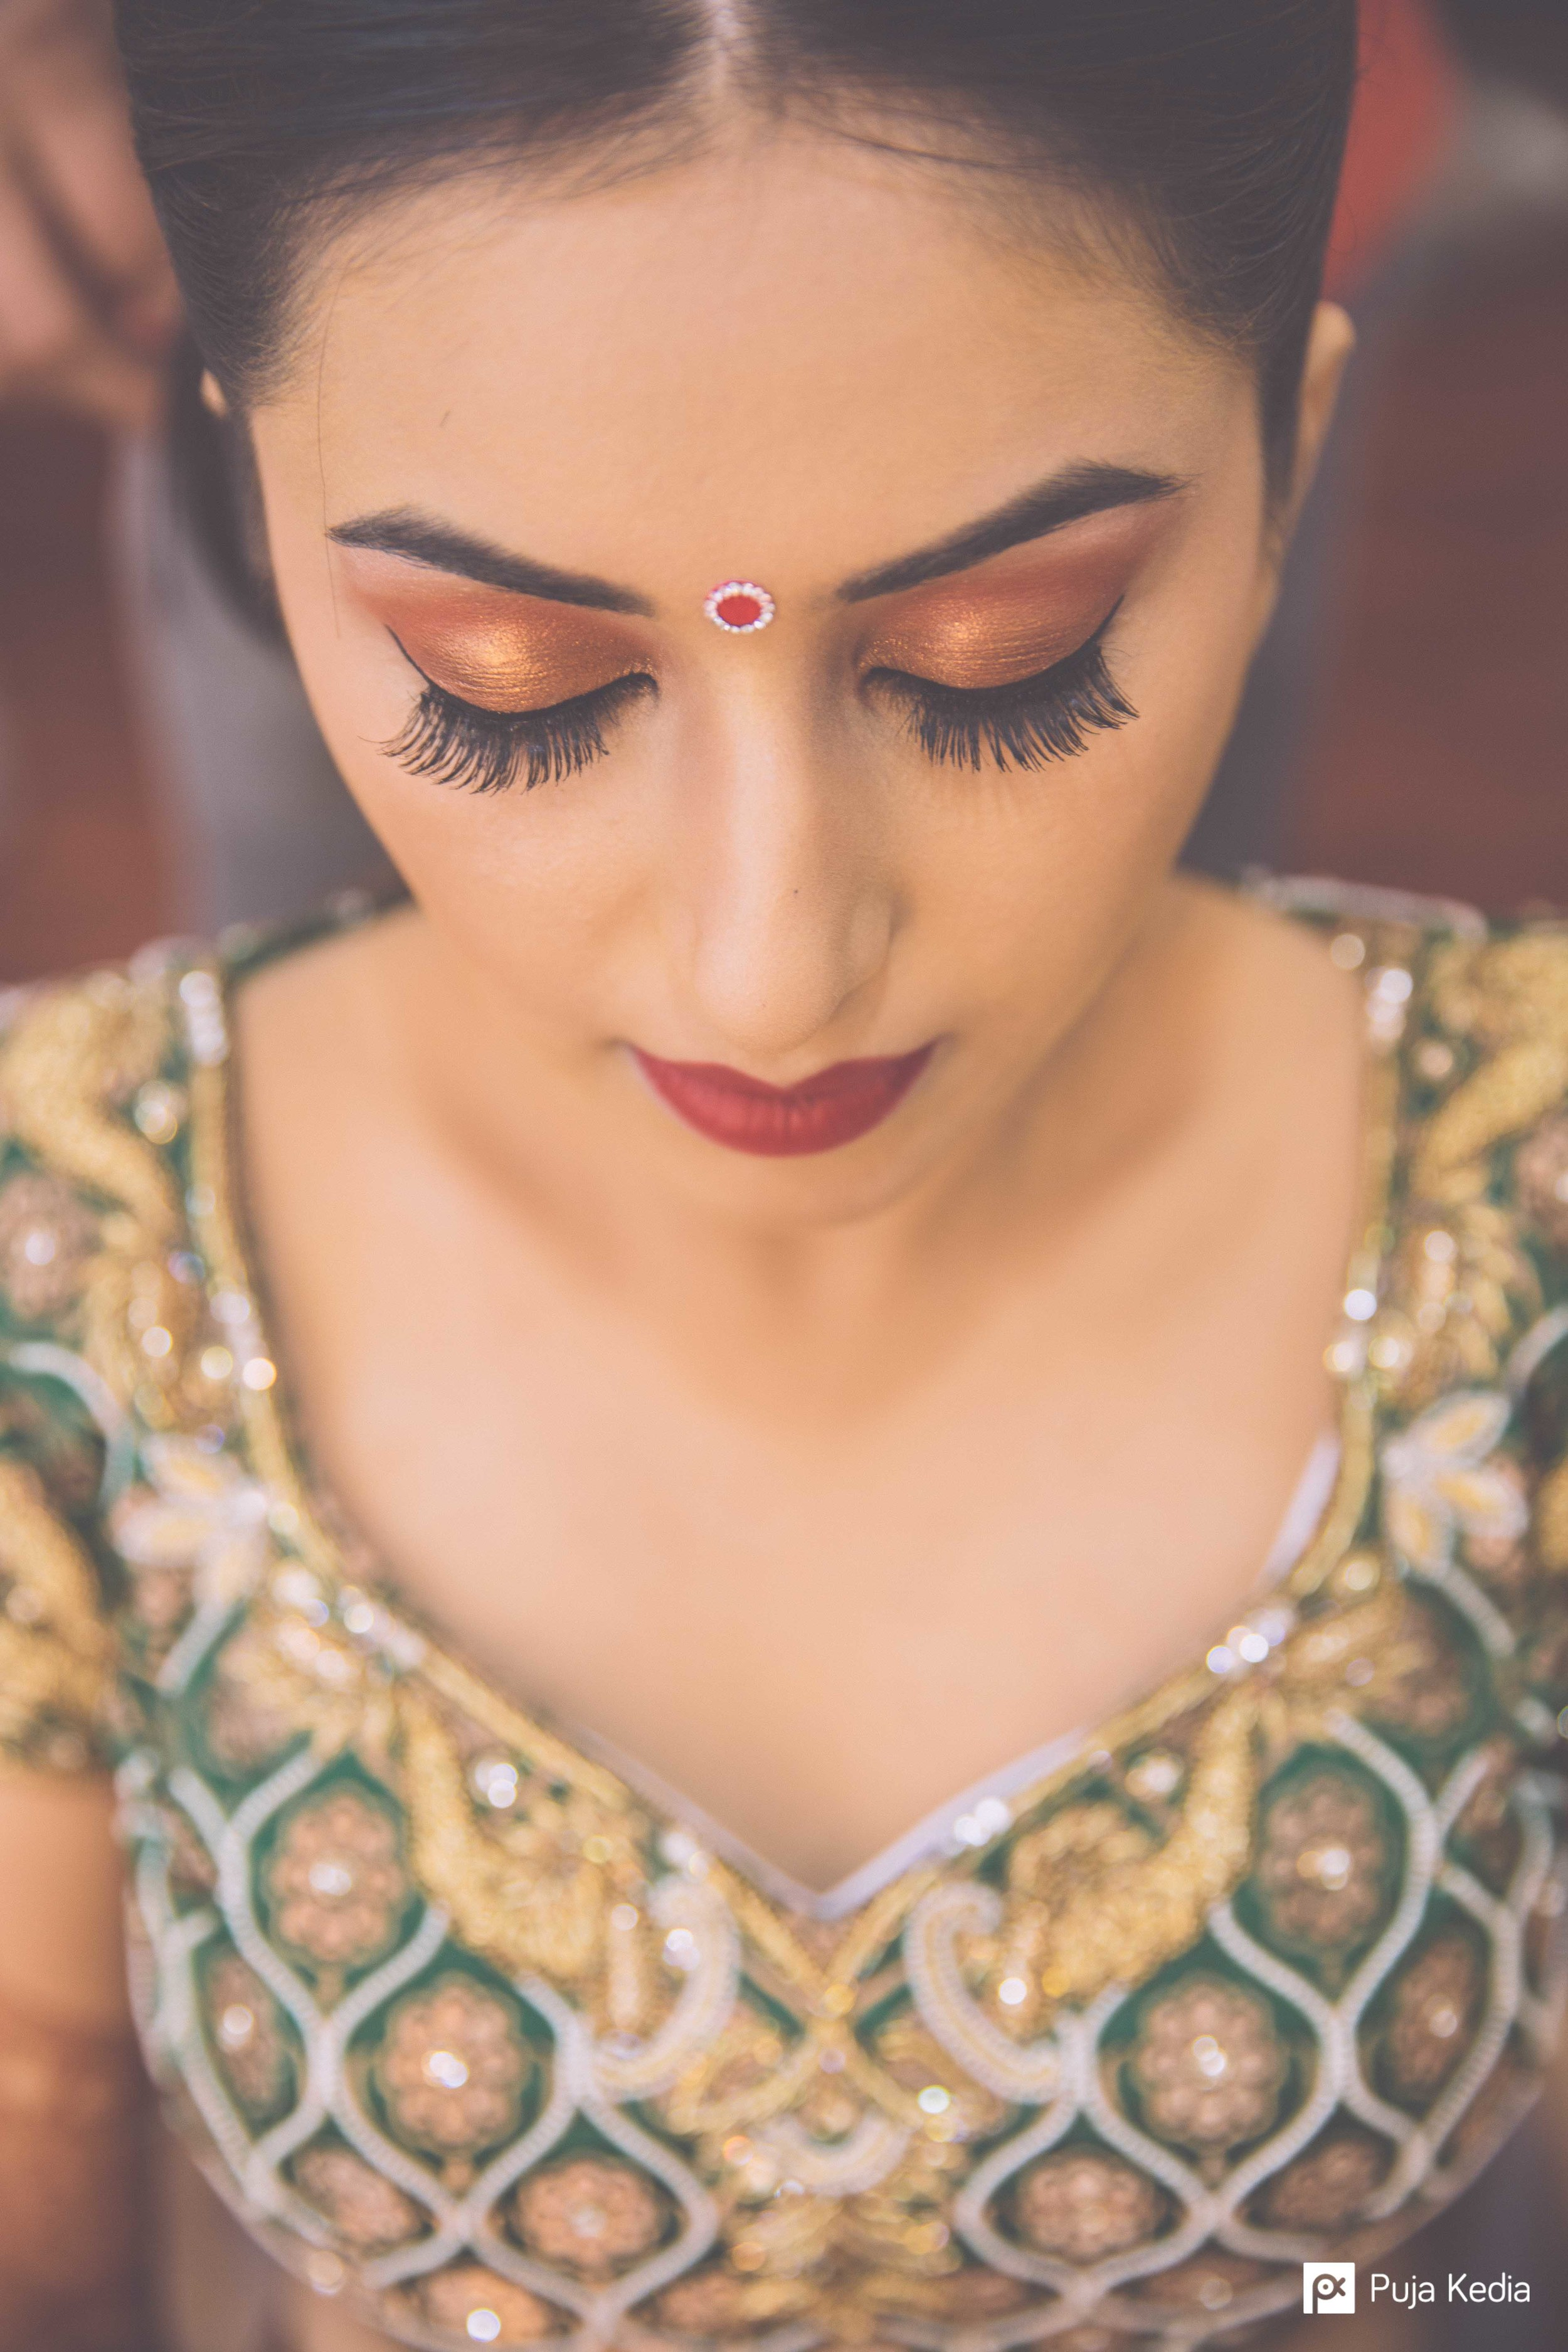 I really liked Make-Up which was very Subtle and Simple and yet highlighted the special features of the Bride.